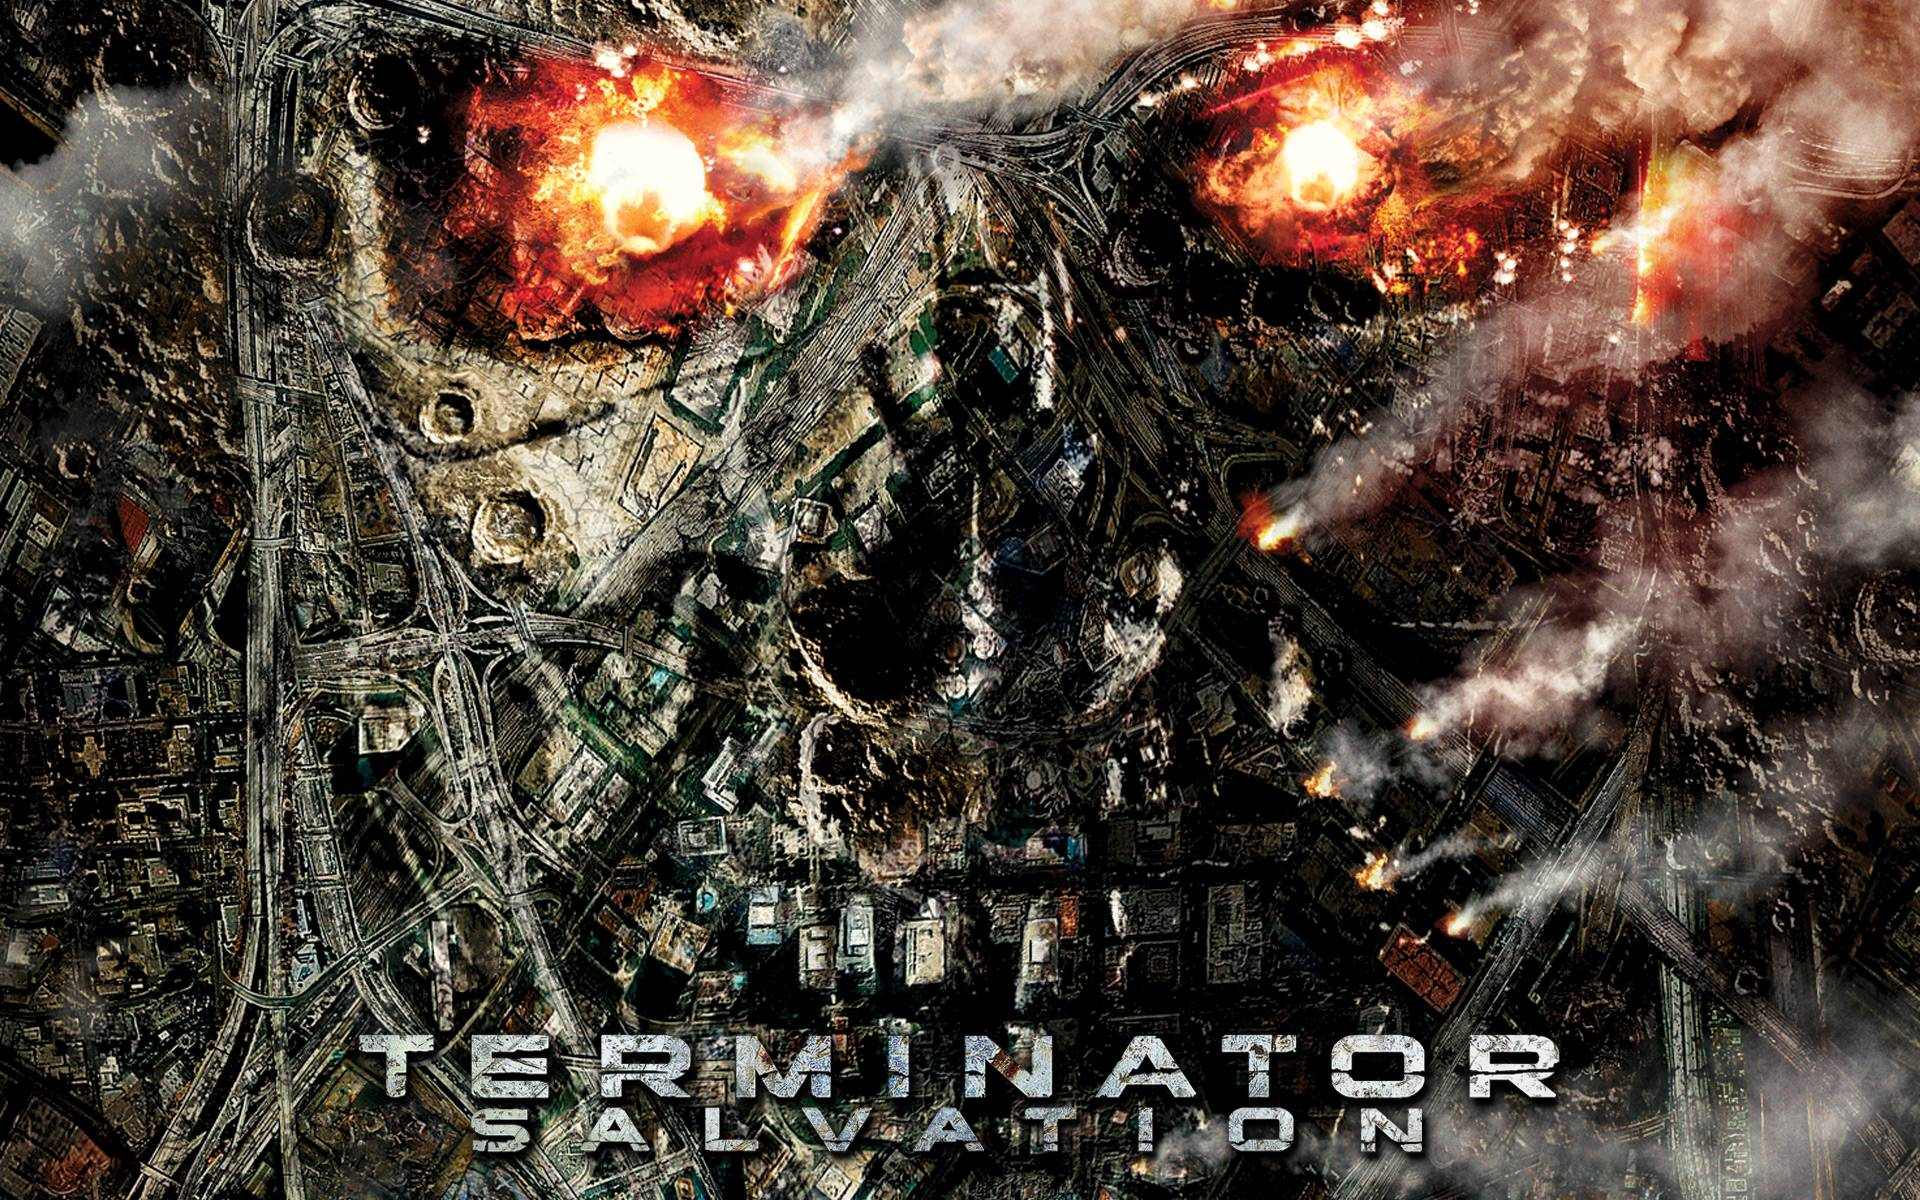 terminator salvation background wallpaper Watch streaming hd terminator salvation, starring christian bale, sam  worthington, anton yelchin,  christian bale in terminator salvation hd  wallpaper.